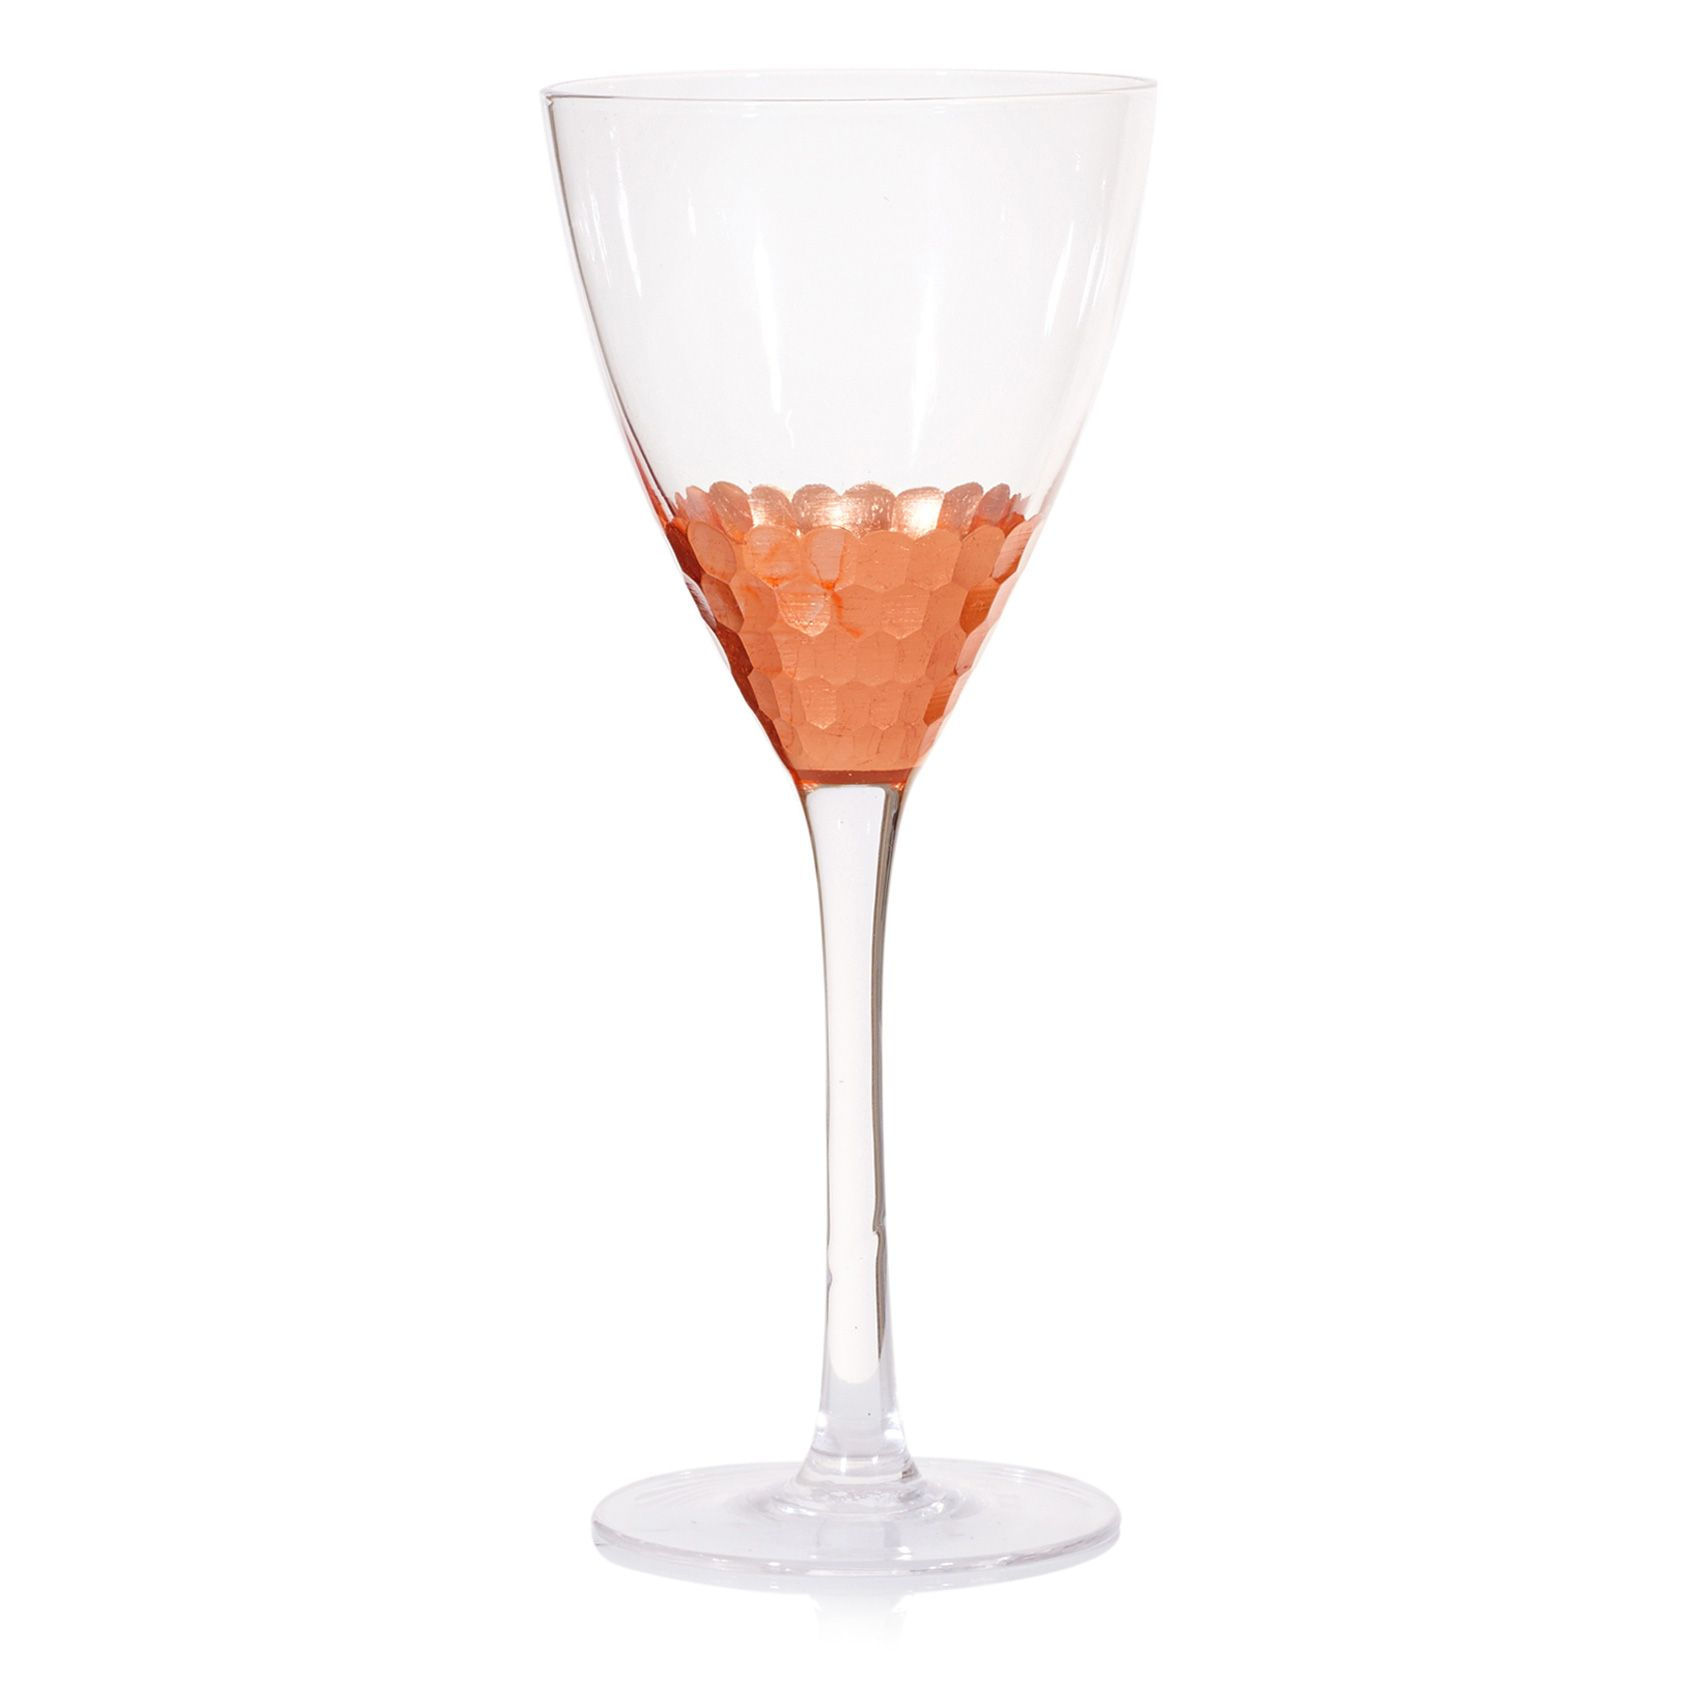 Buy The Copper Honeycomb Wine Glass At Oliver Bonas. Enjoy Free UK Standard  Delivery For Home Design Ideas